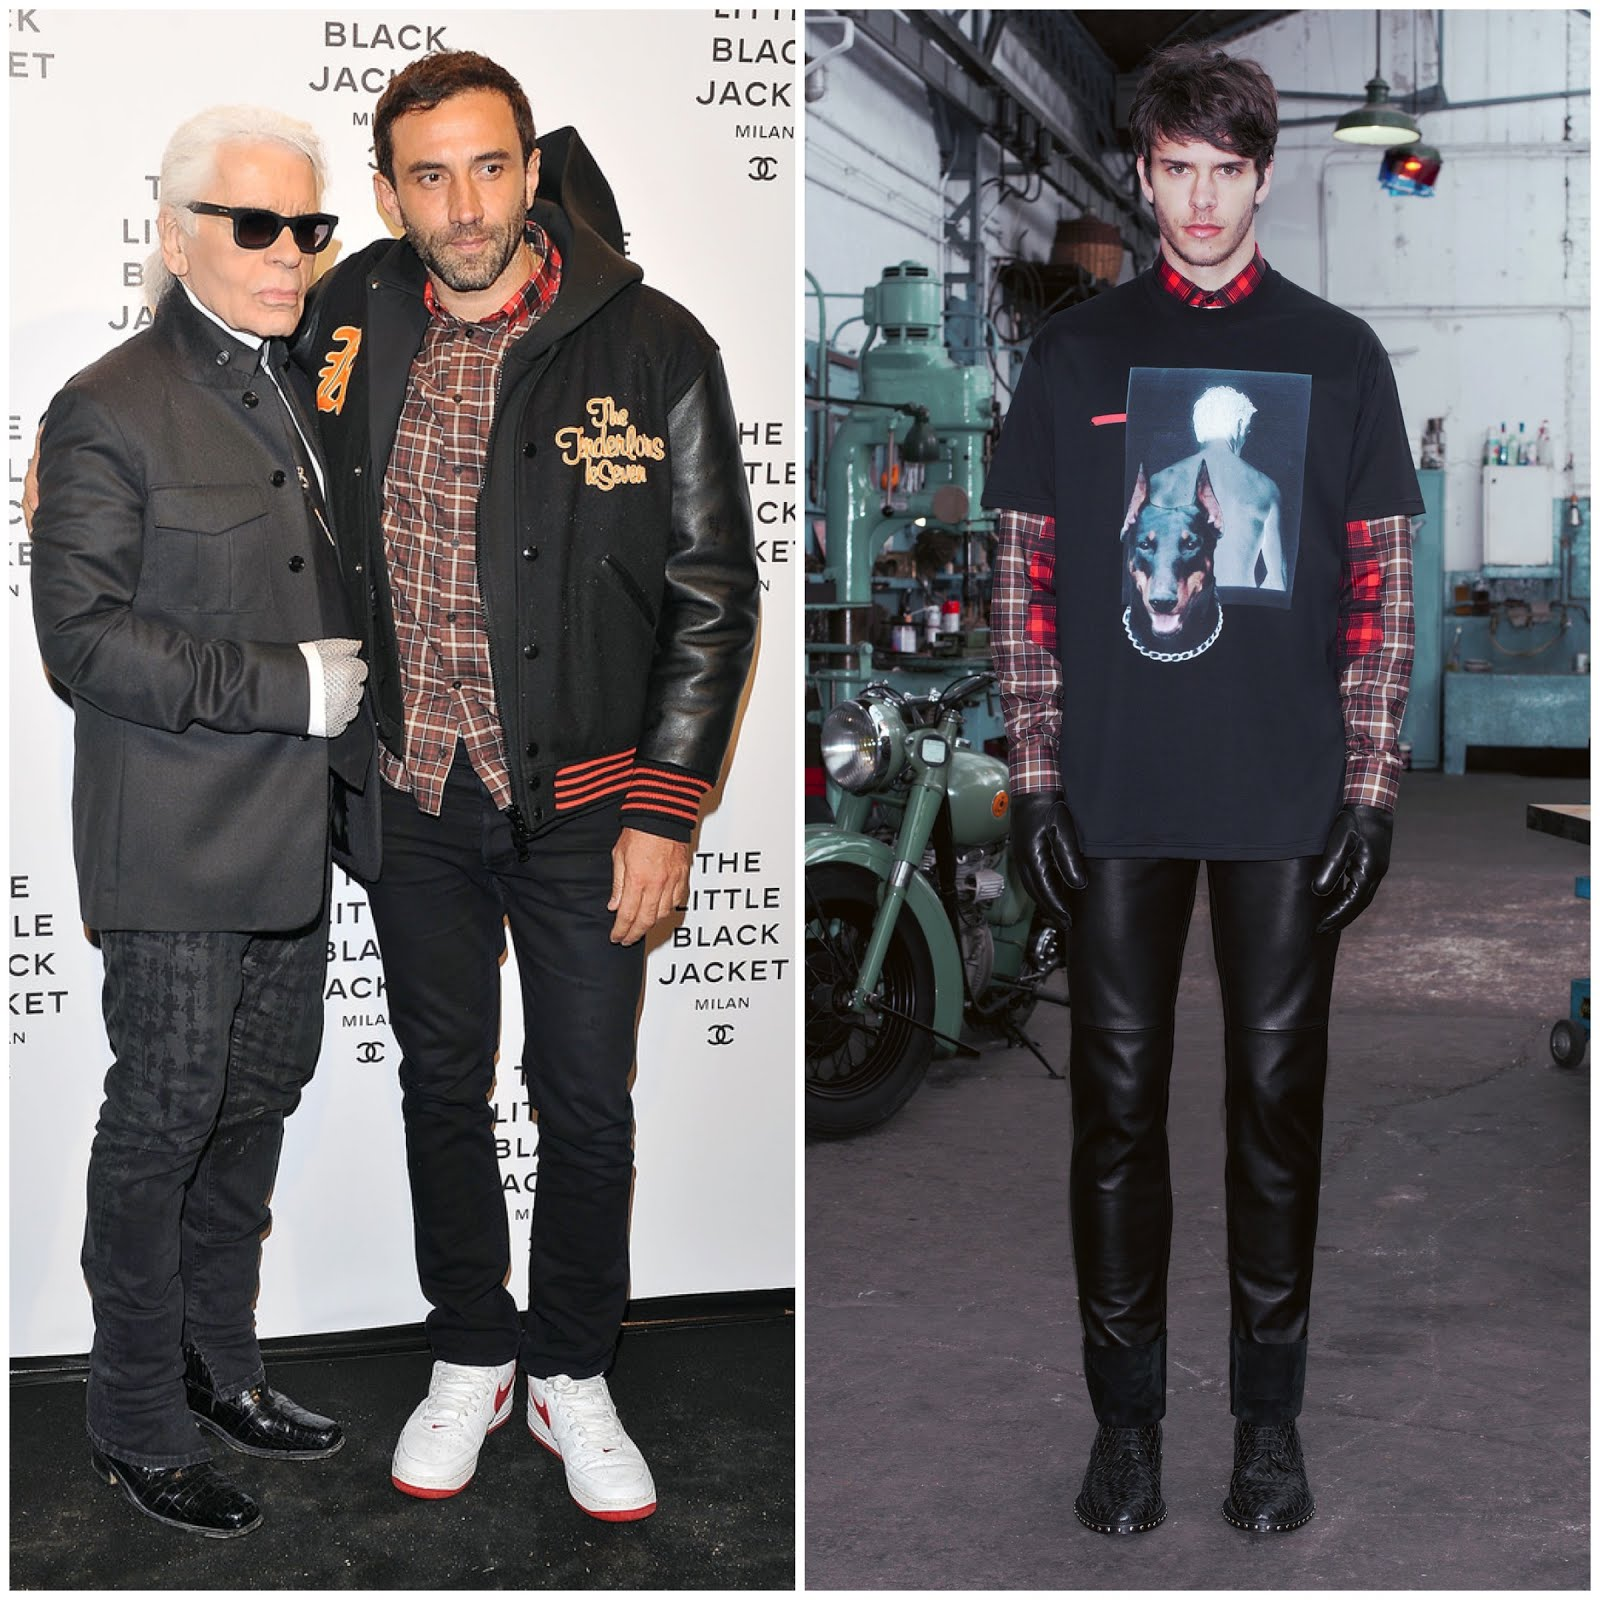 00O00 Menswear Blog Riccardo Tisci in Givenchy - Chanel